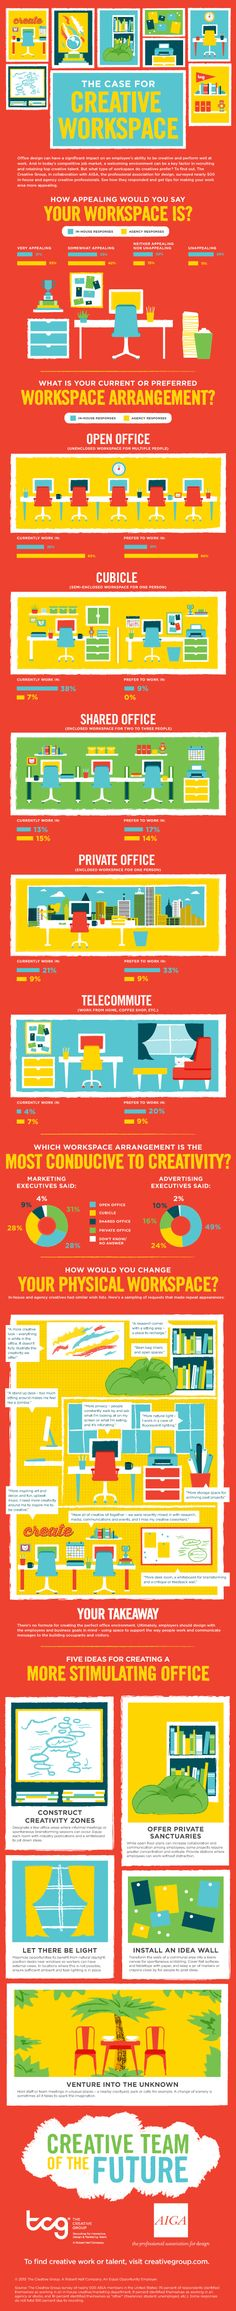 #Creative #Workspace. Great options for creating a creative, comfortable workspace.